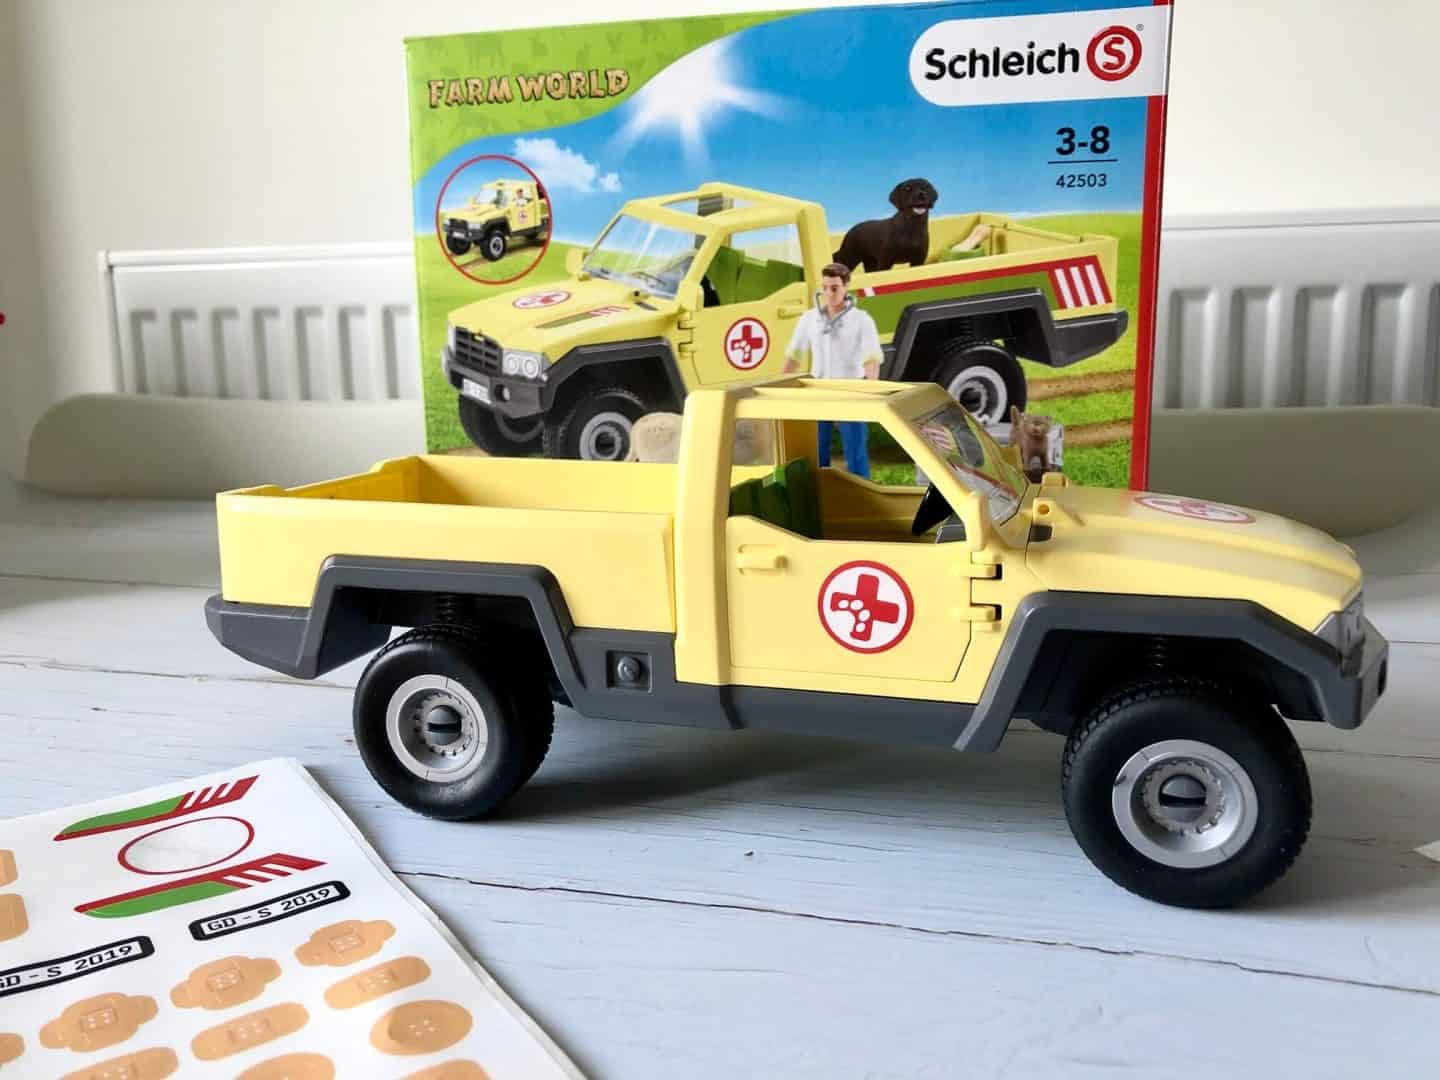 Putting the stickers in the Schleich Farm World  Veterinarian Visit at the Farm Pickup